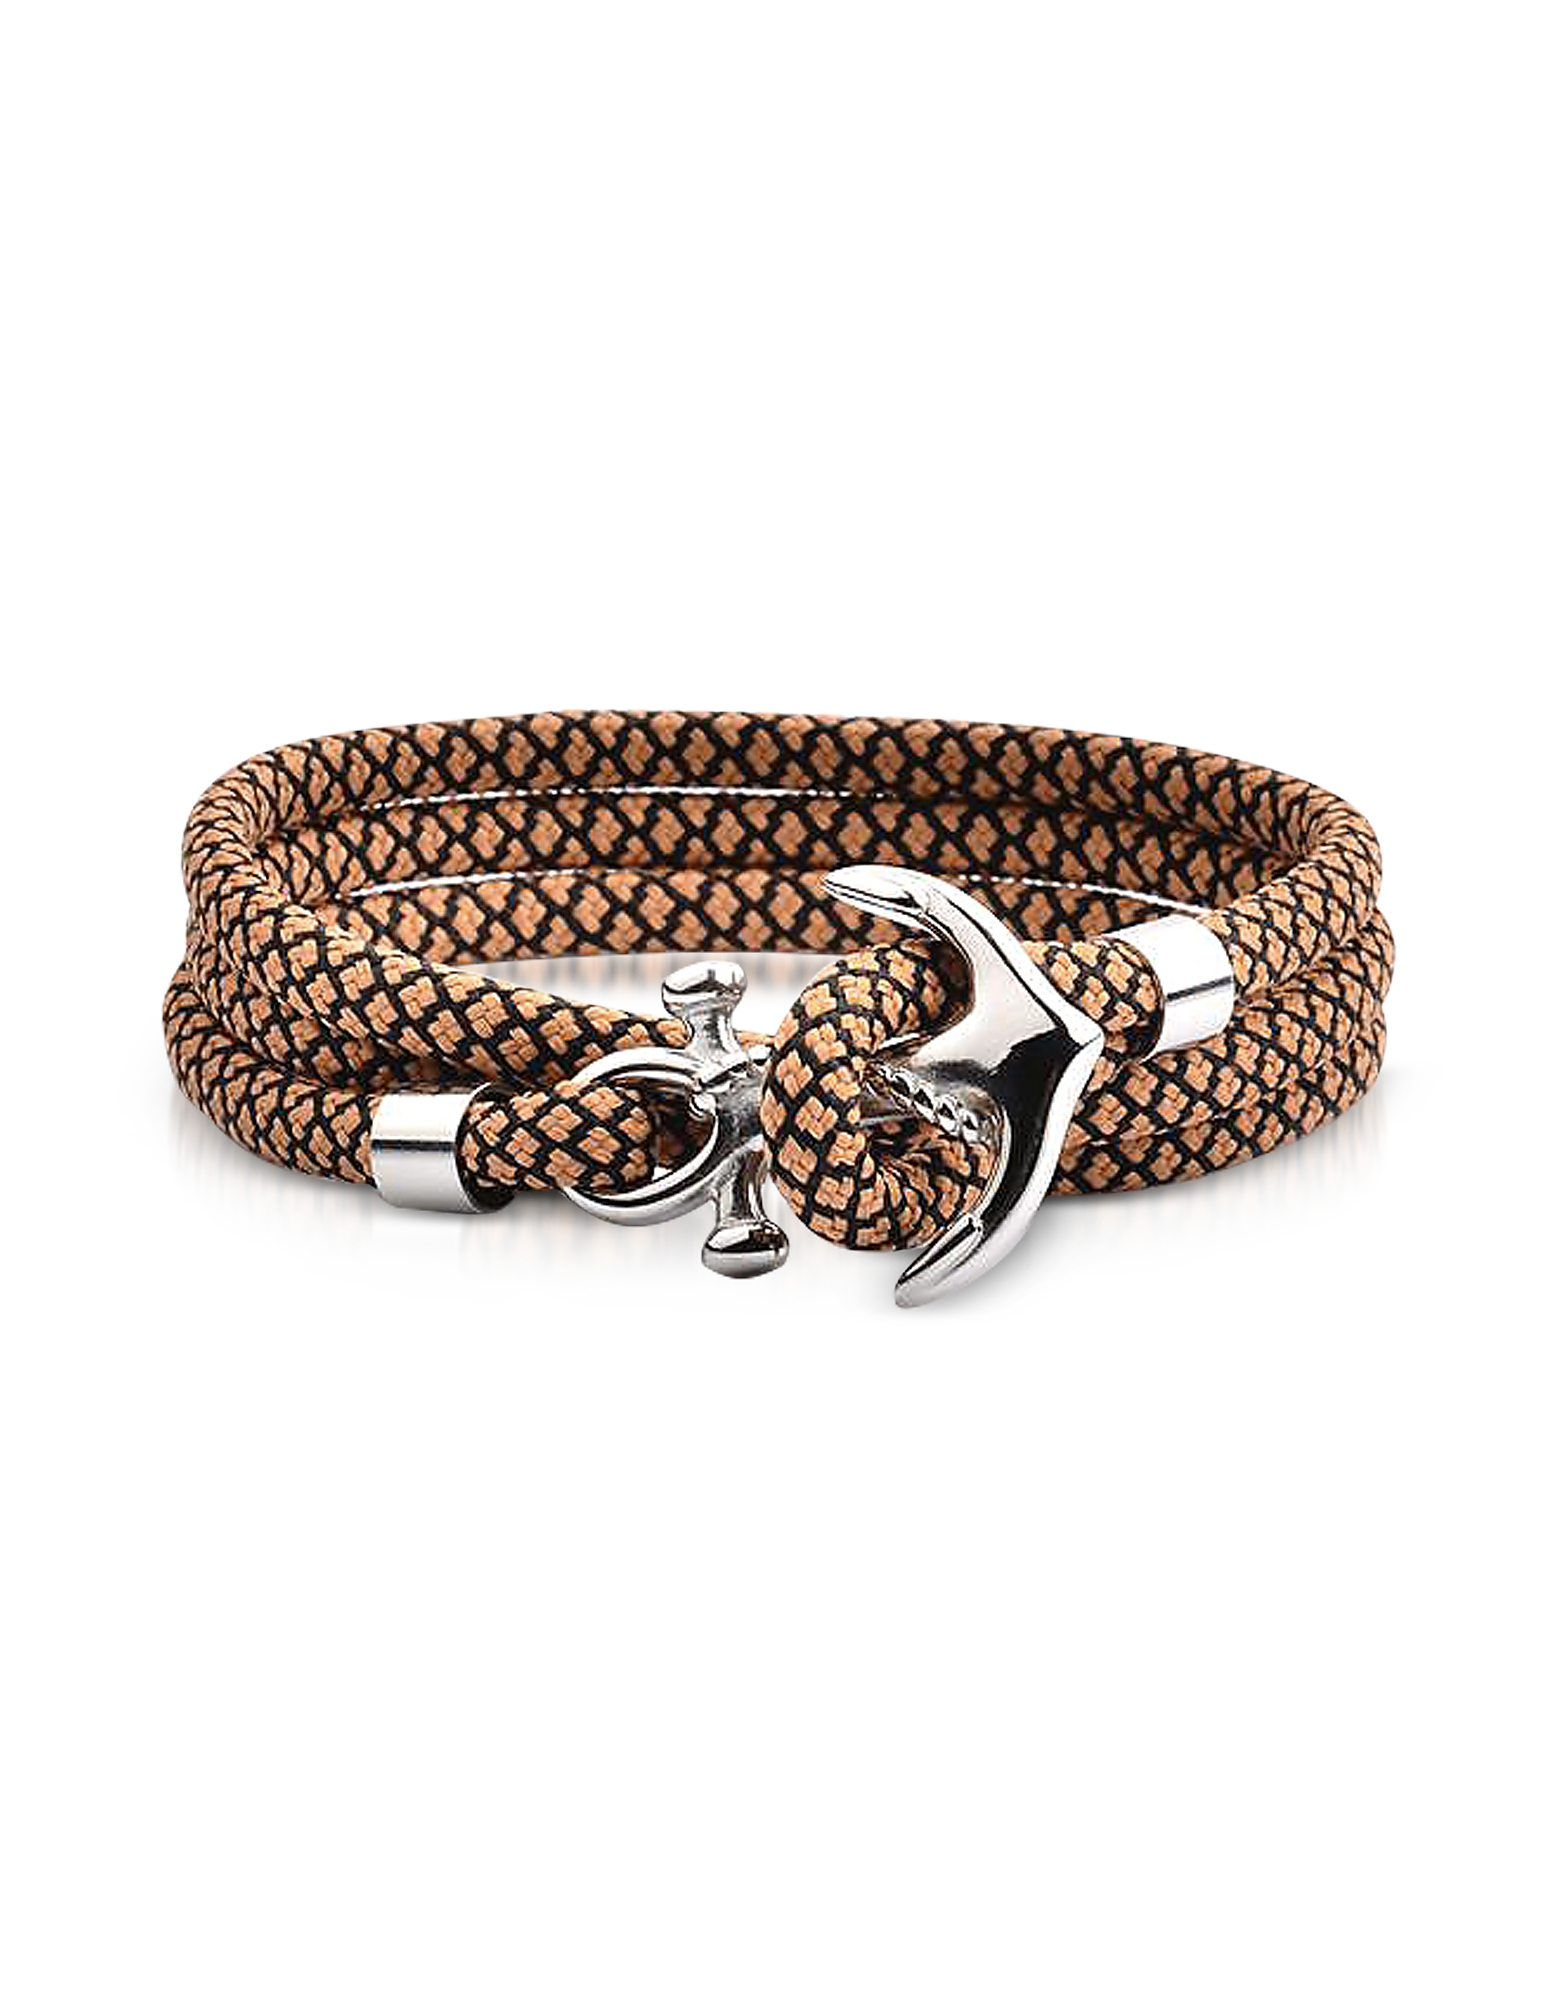 Forzieri Men's Bracelets, Light Brown and Black Rope Triple Bracelet w/Anchor